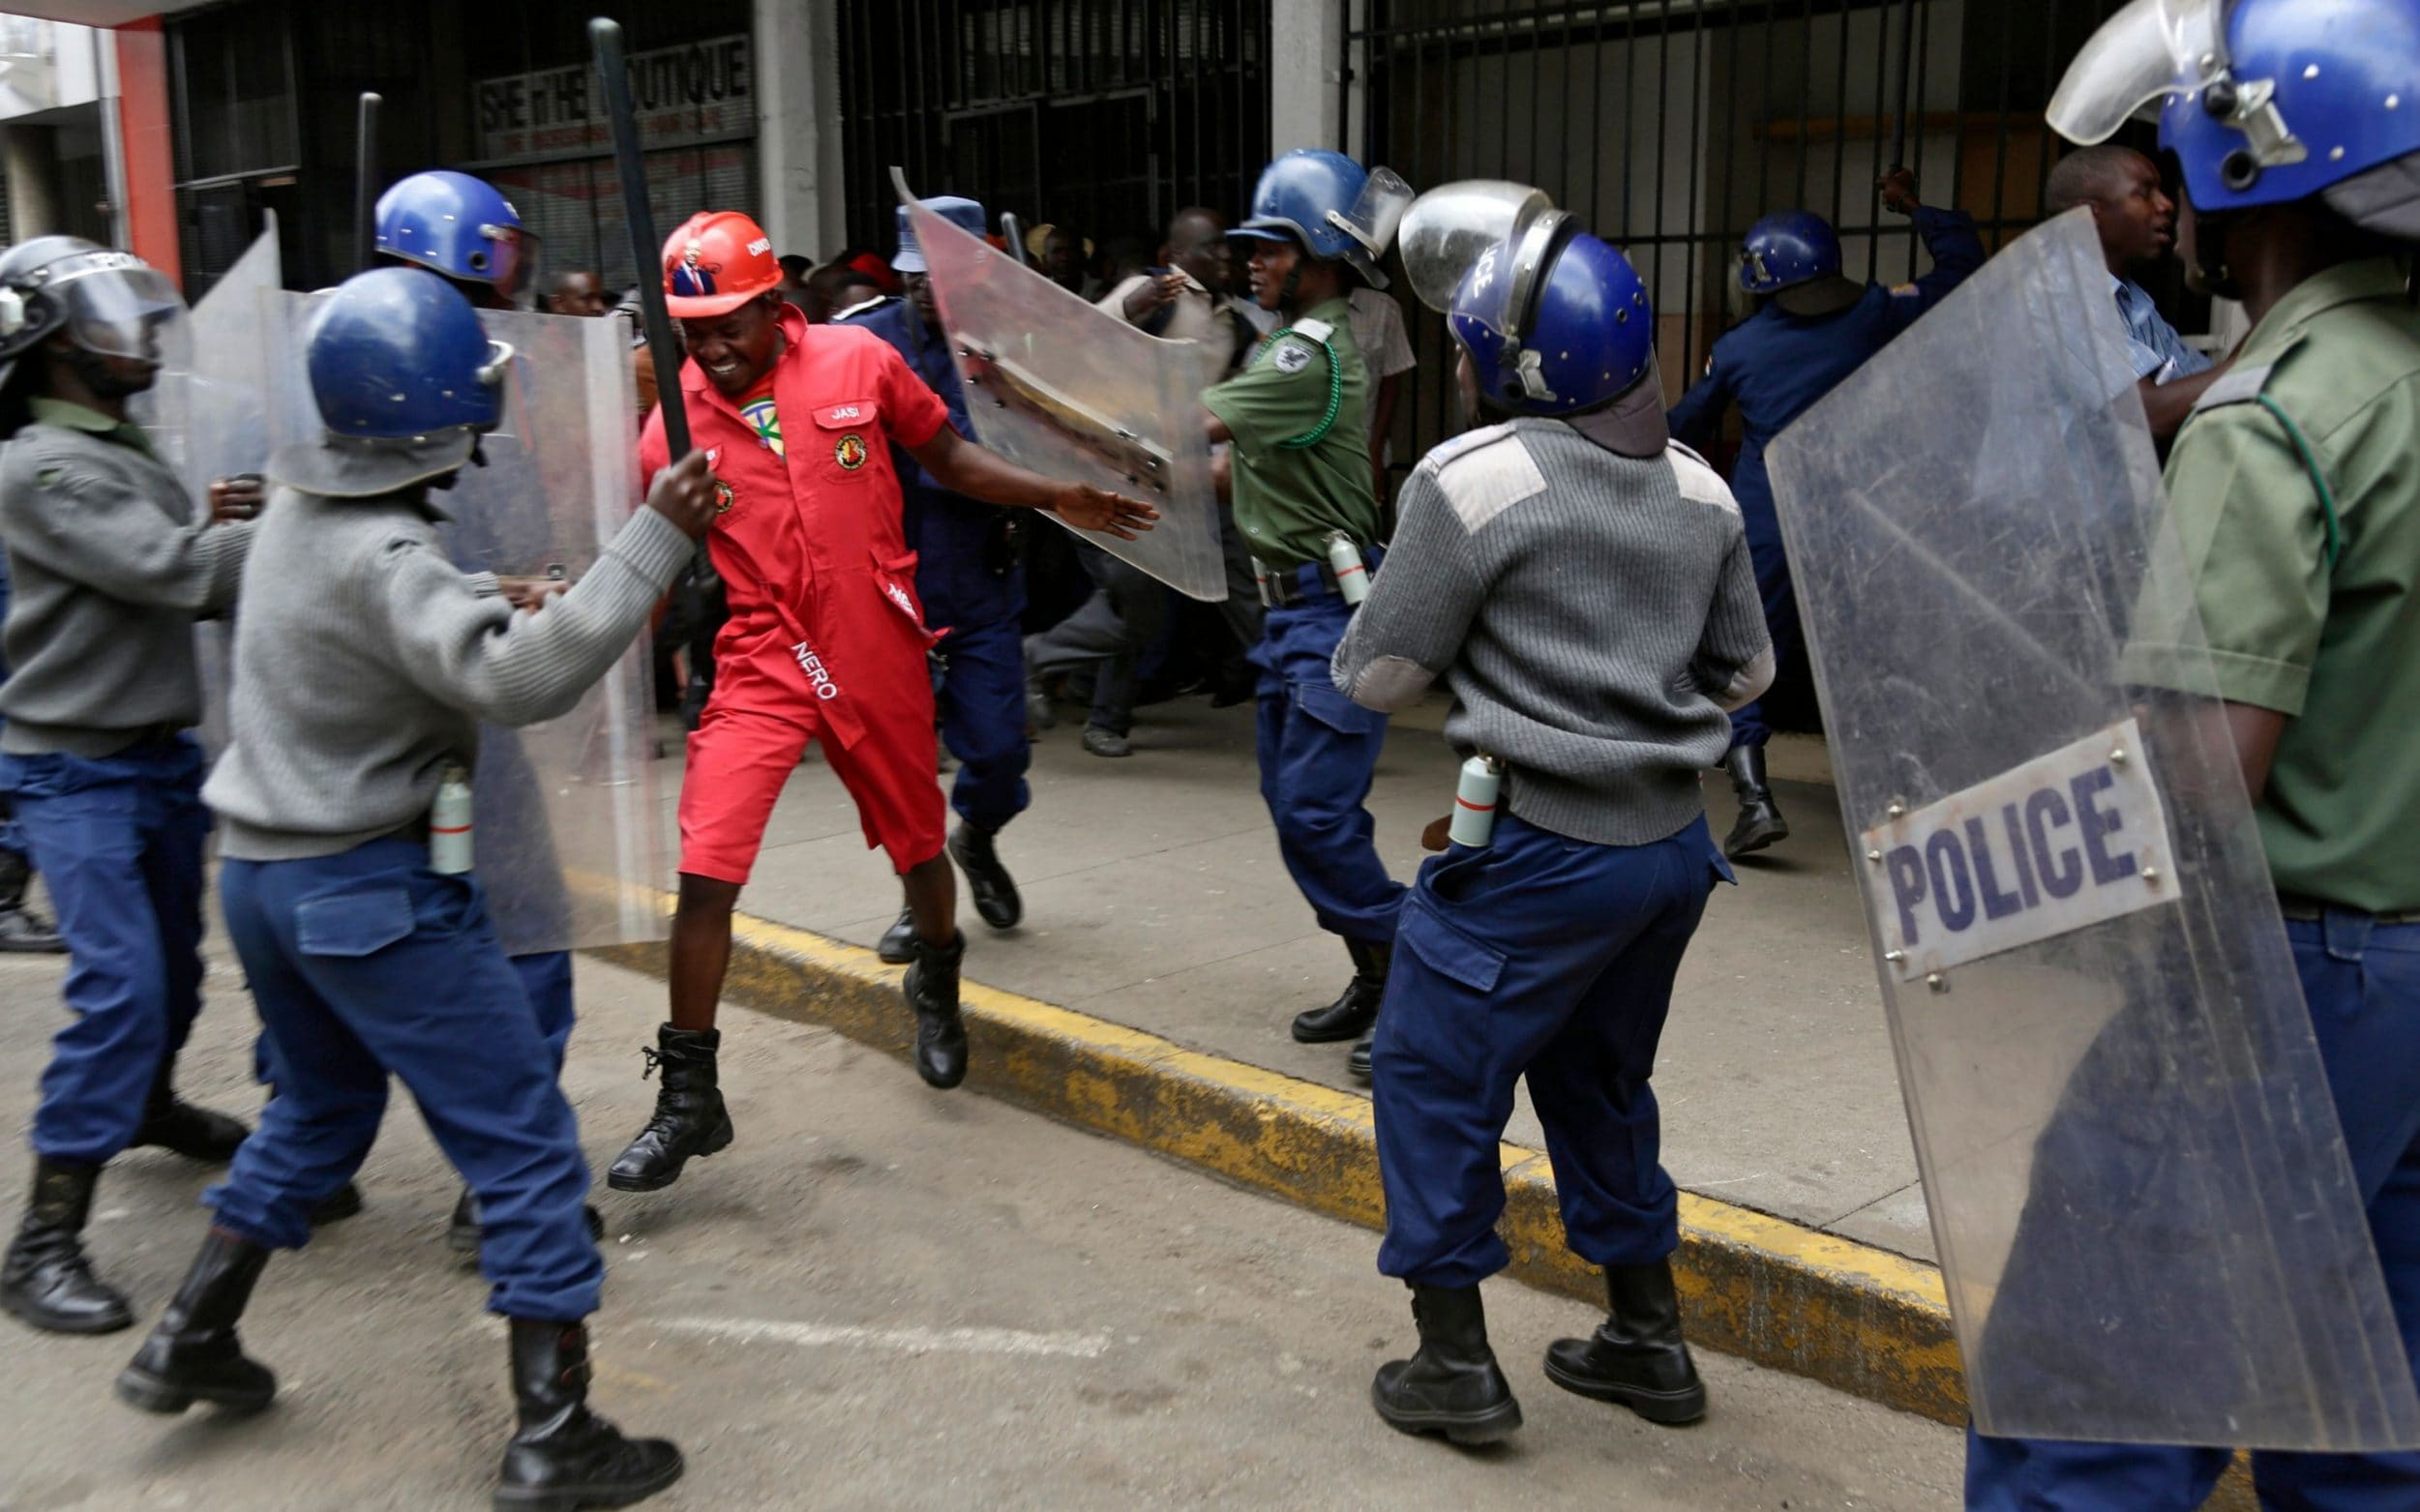 Zimbabwe opposition party complains of unprecedented persecution as state cracks down